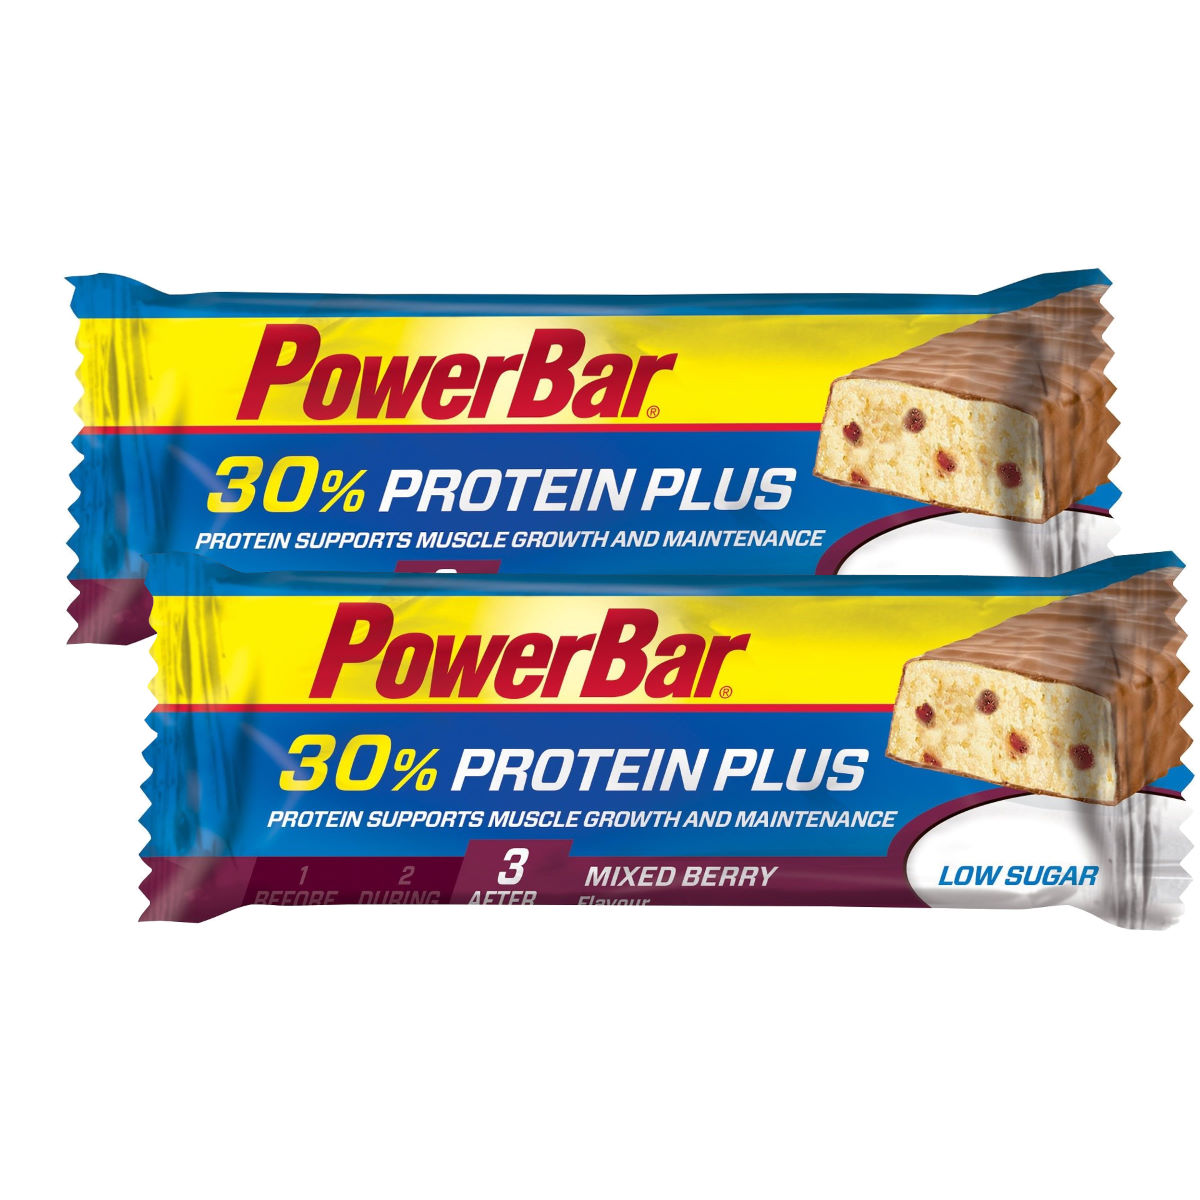 PowerBar Protein Plus Bar Mixed Berry 15 x 55g - 2 for 1